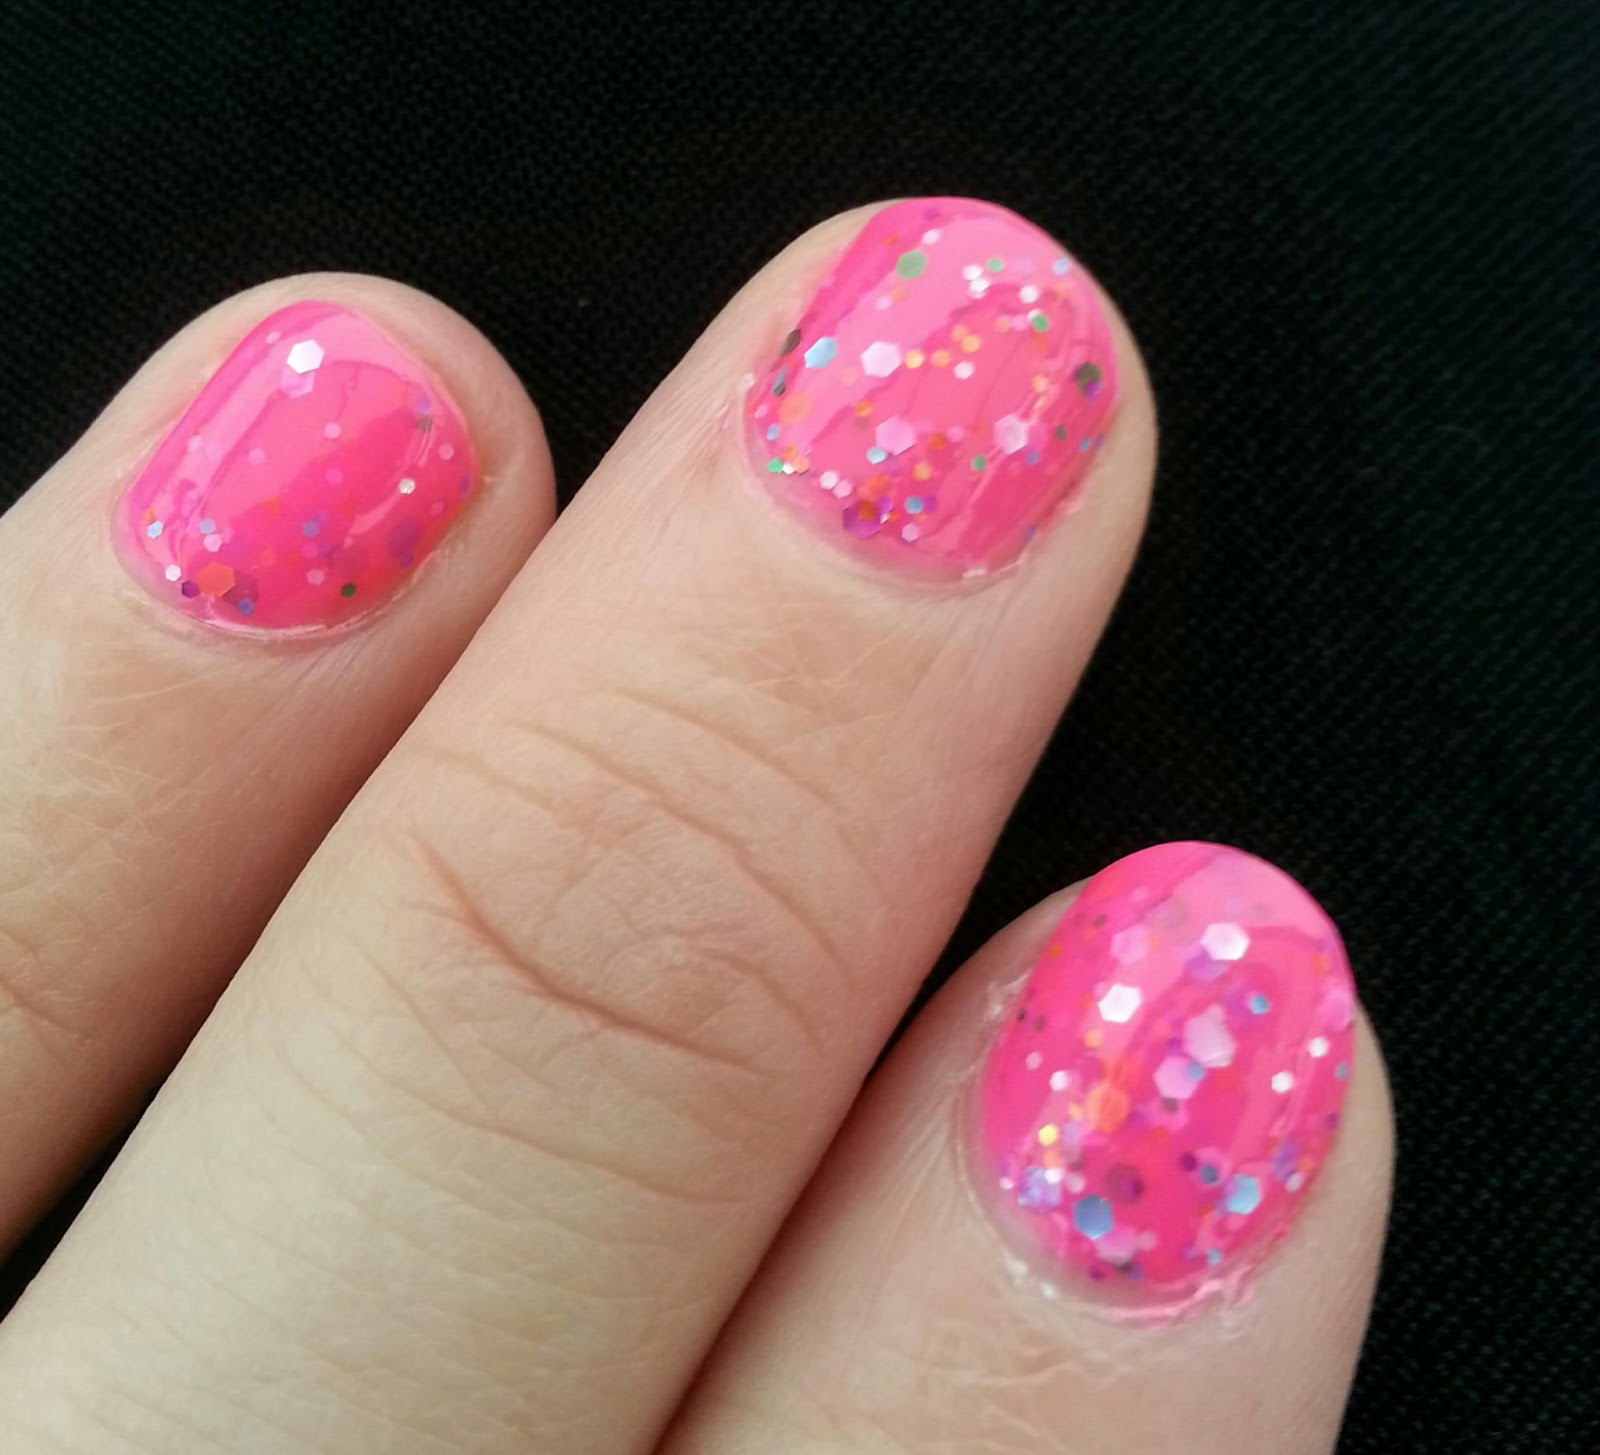 Kitty Luvs Color!: Mardi Gras glitter nail deco, Hot Pink Candy Shop